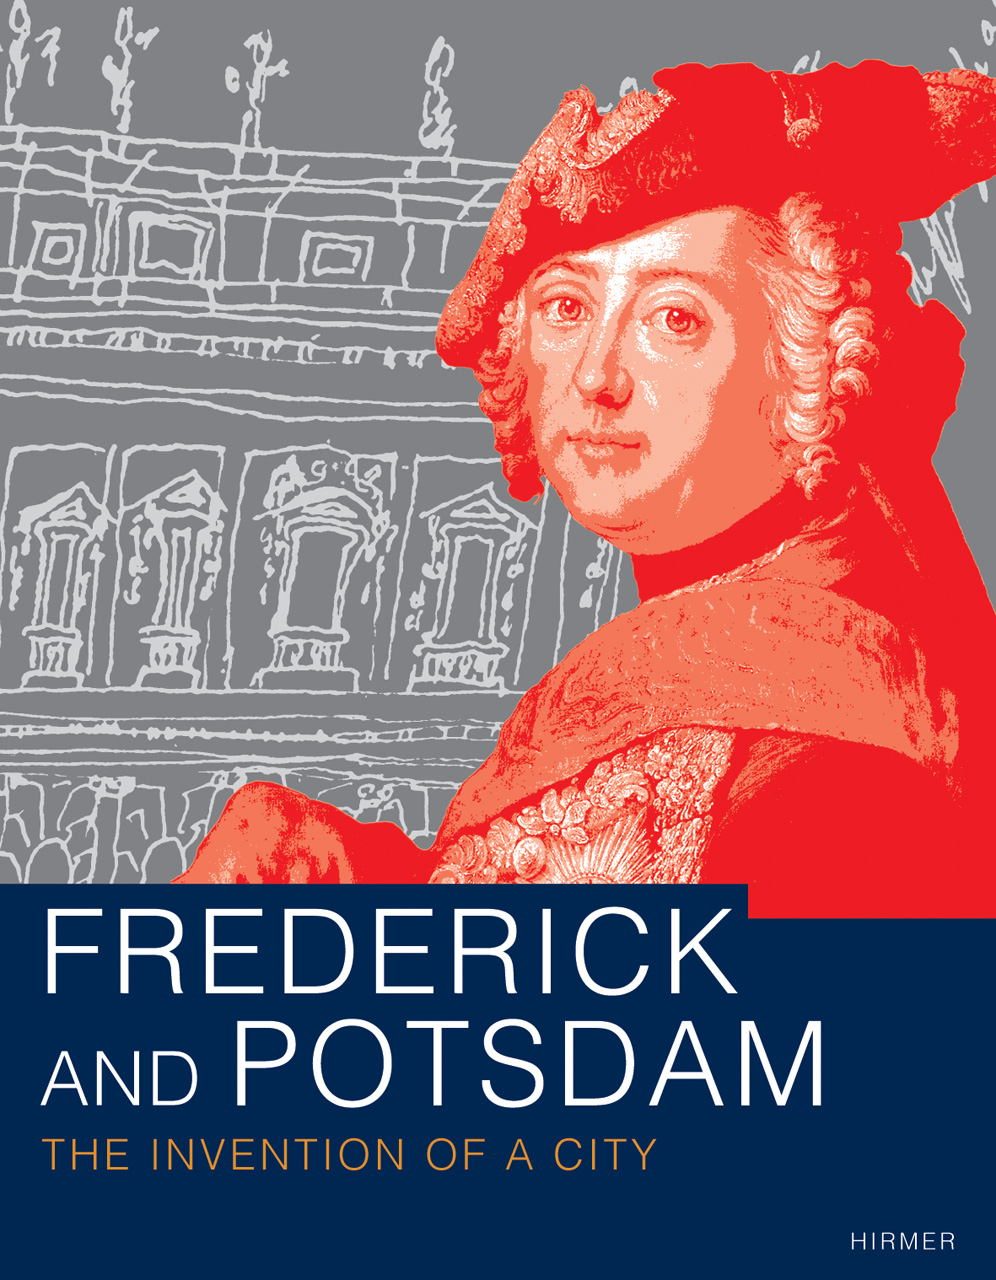 Frederick and Potsdam: A City is Born